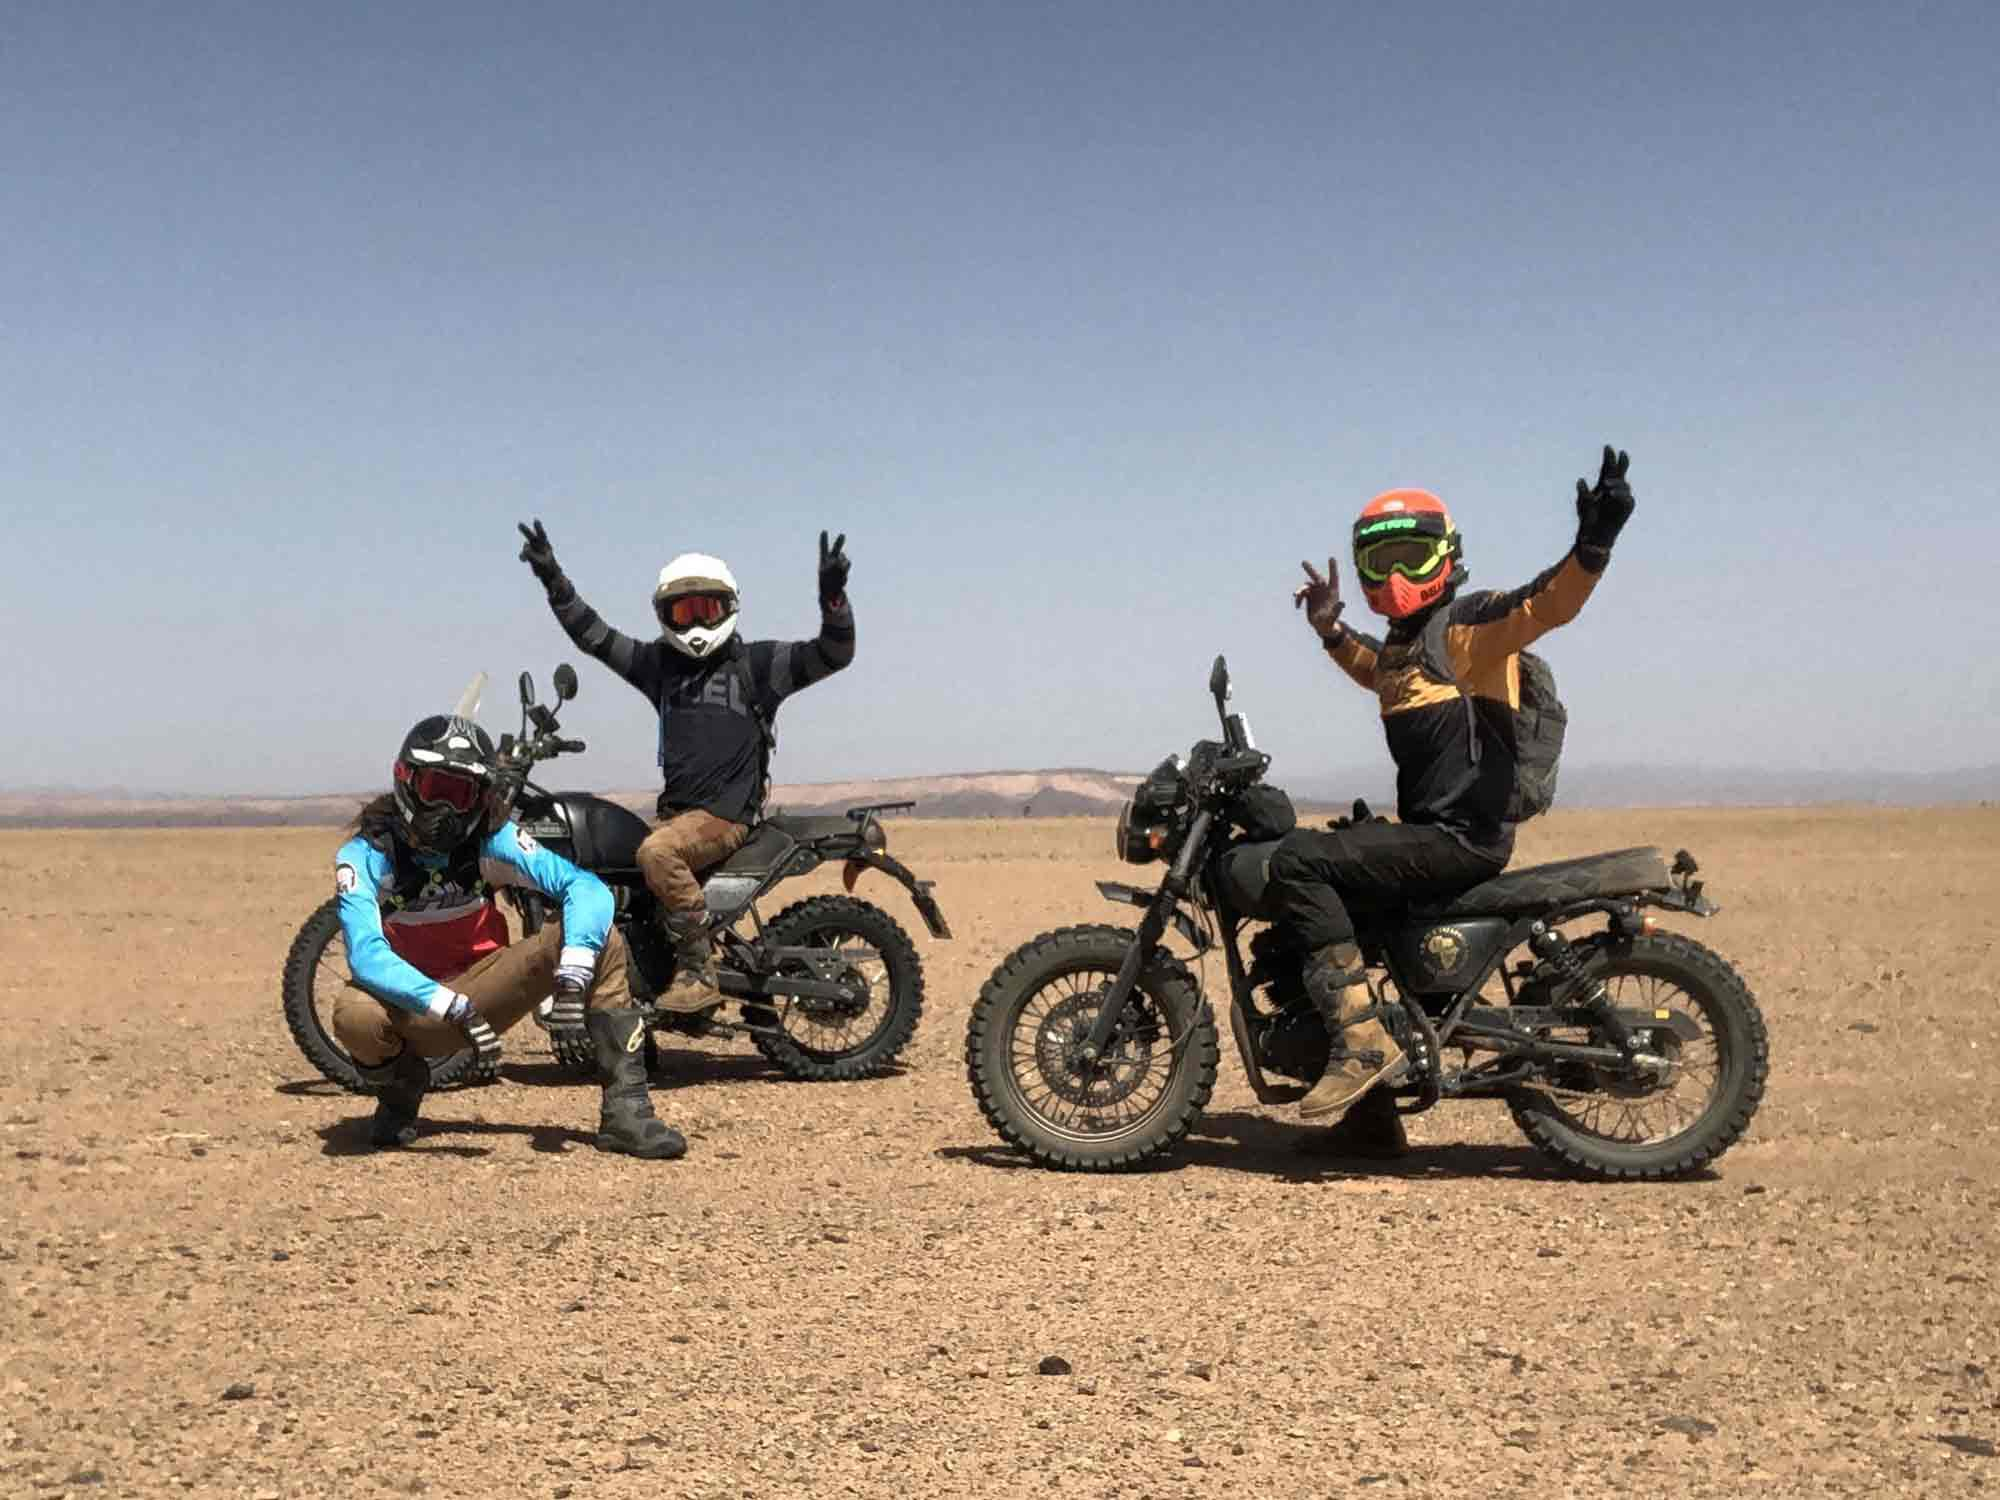 Me on the left, David in the middle on his Royal Enfield Himalayan, and Liam on the Mutt on the right.